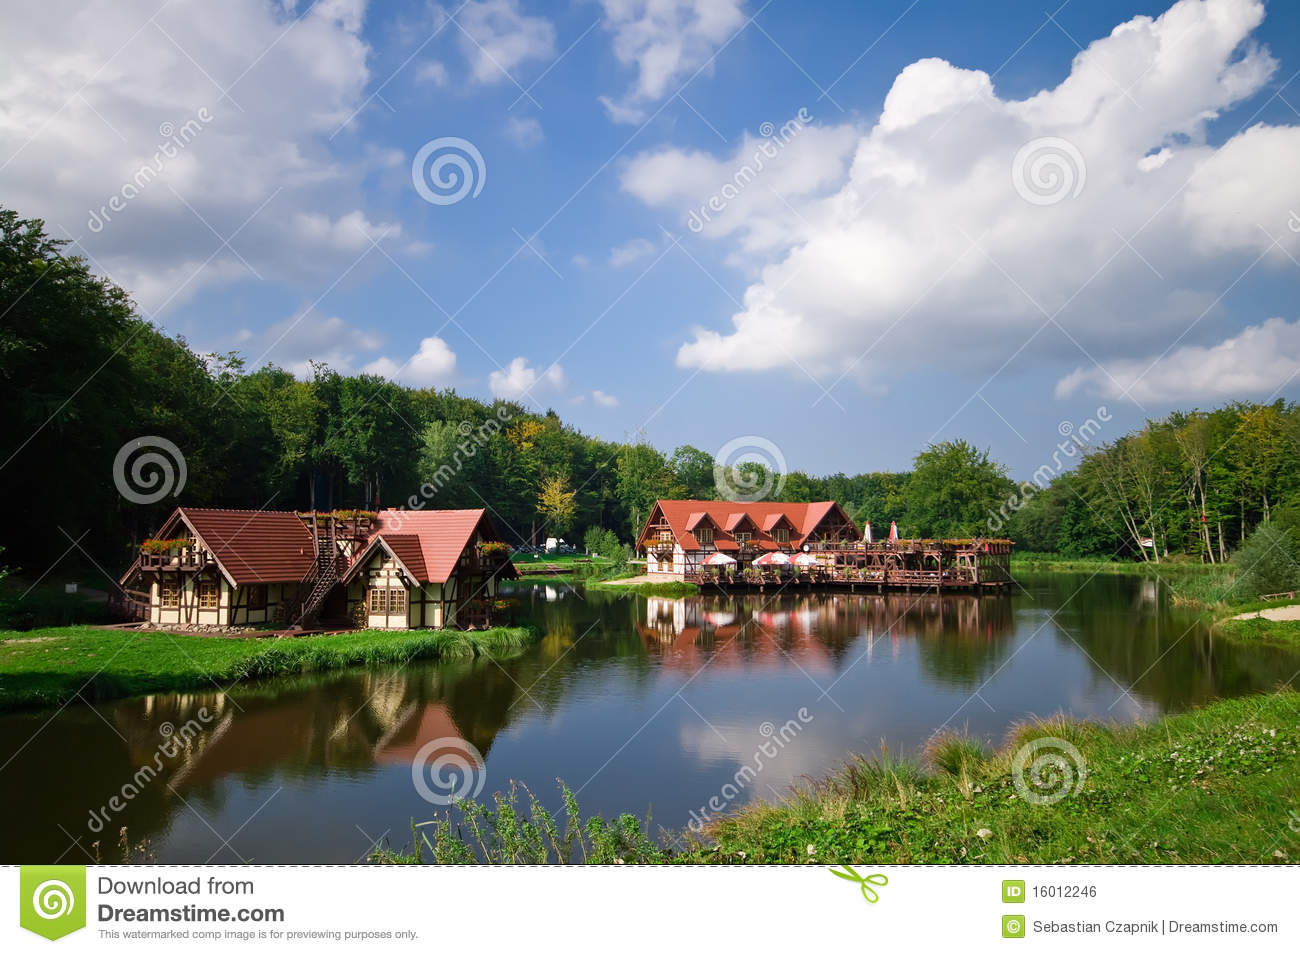 Lakeside Houses Royalty Free Stock Image - Image: 16012246